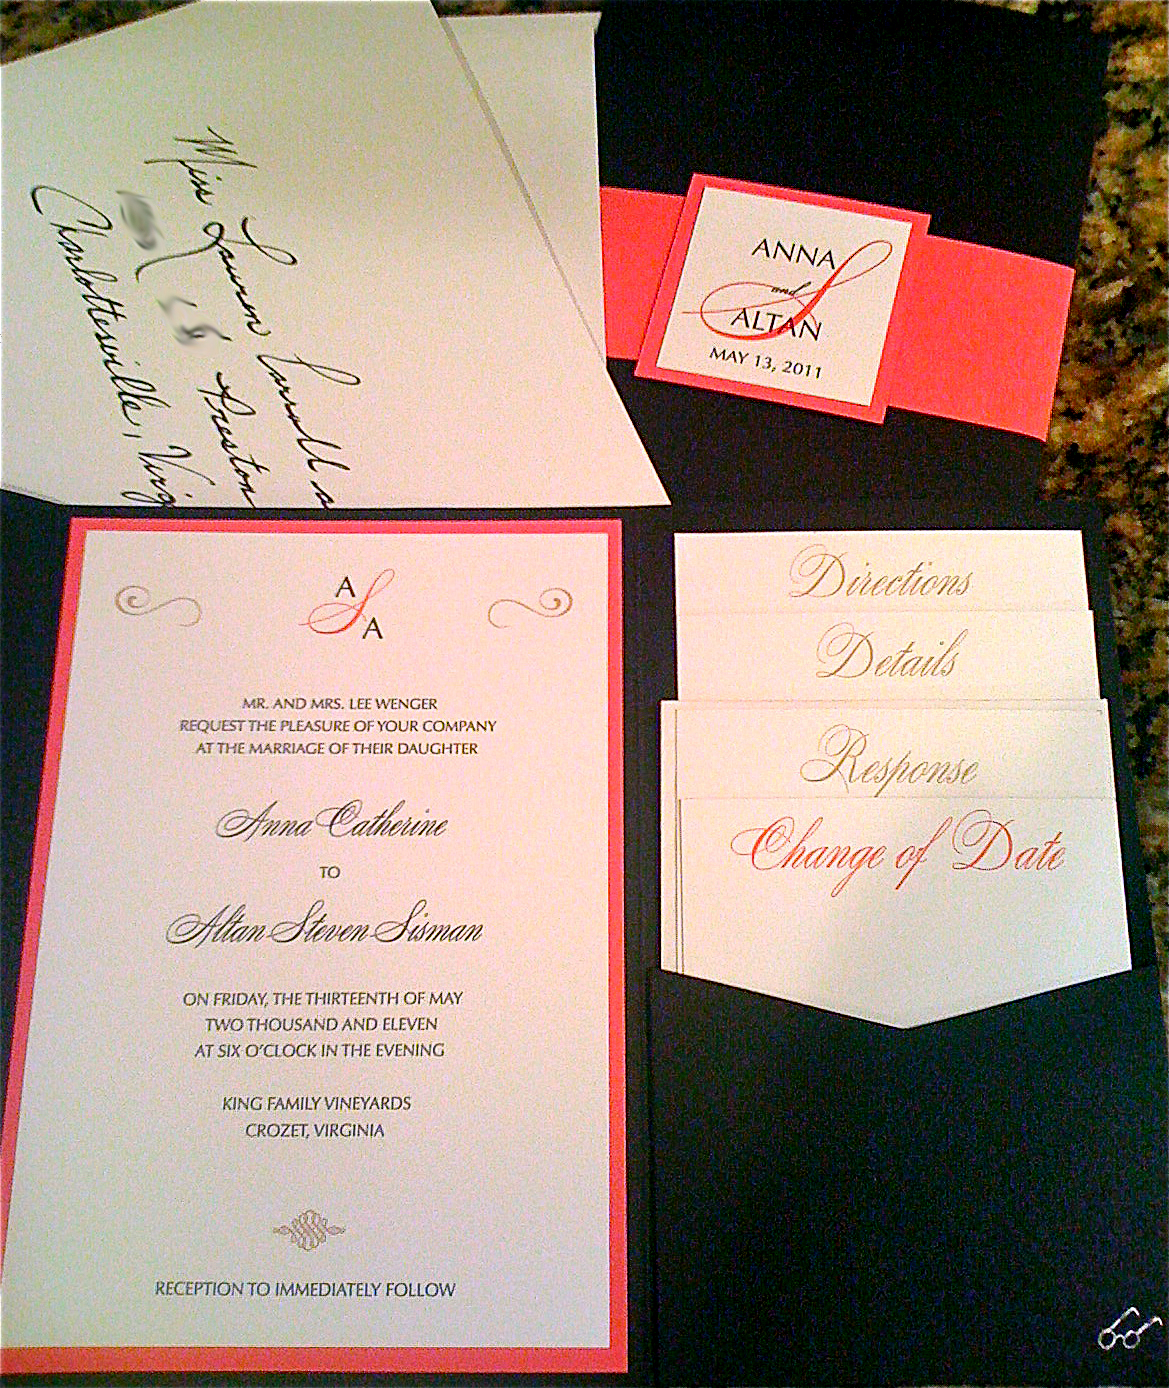 Handwritten Wedding Invitations Envelopes: Simply Handwritten: DIY Wedding Invitations And Envelope